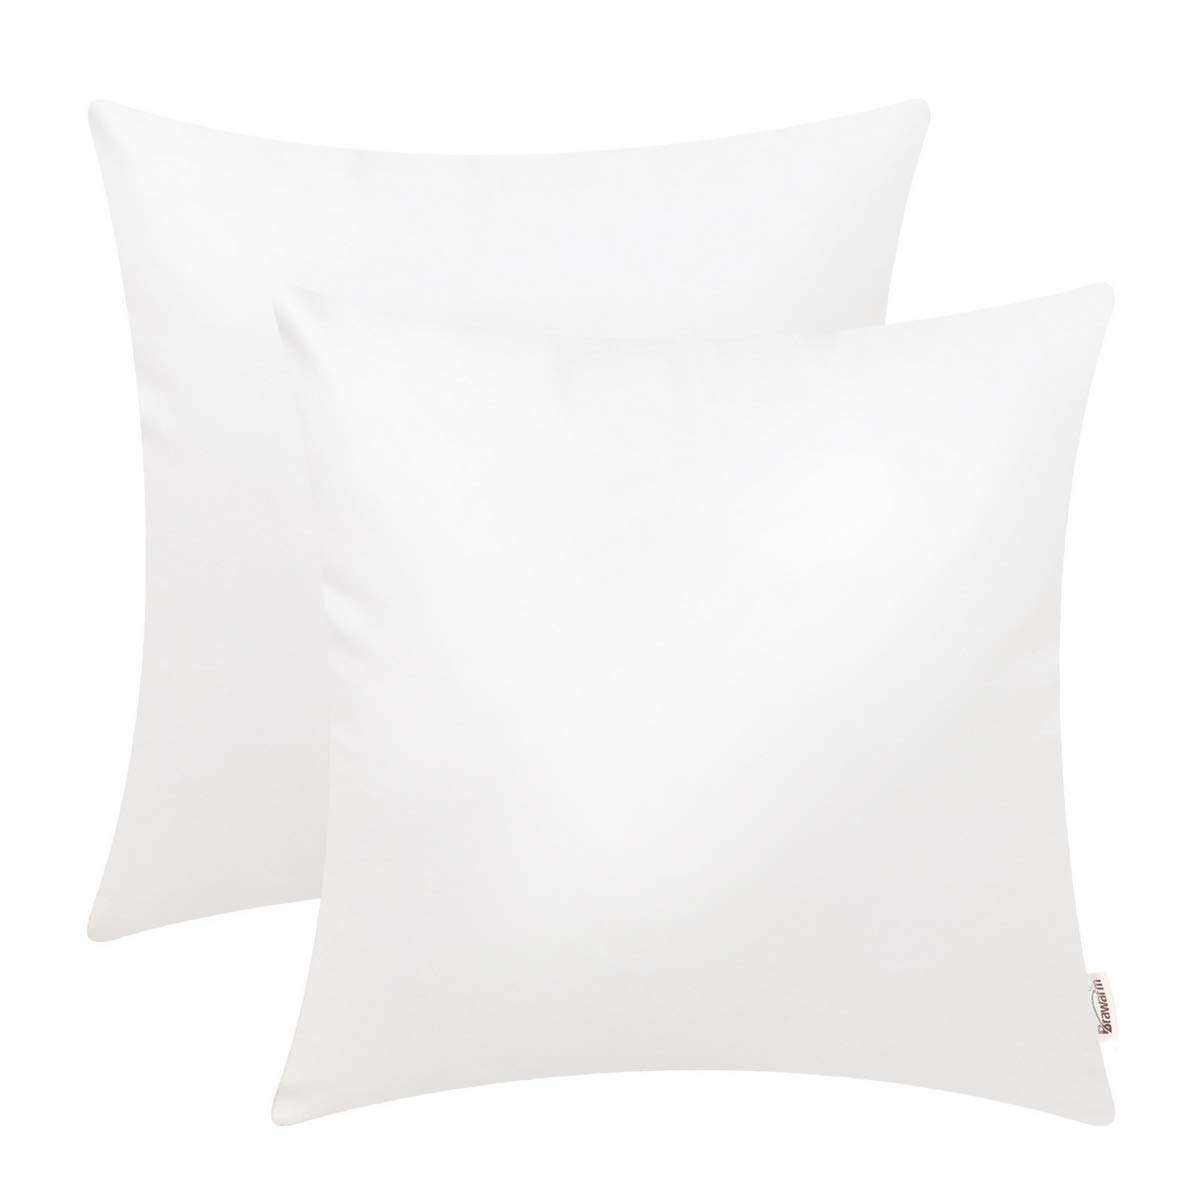 BRAWARM Pack of 2 Cozy Throw Pillow Covers Cases for Couch Sofa Home Decoration Solid Dyed Soft Faux Leather Both Sides 18 X 18 Inches True White